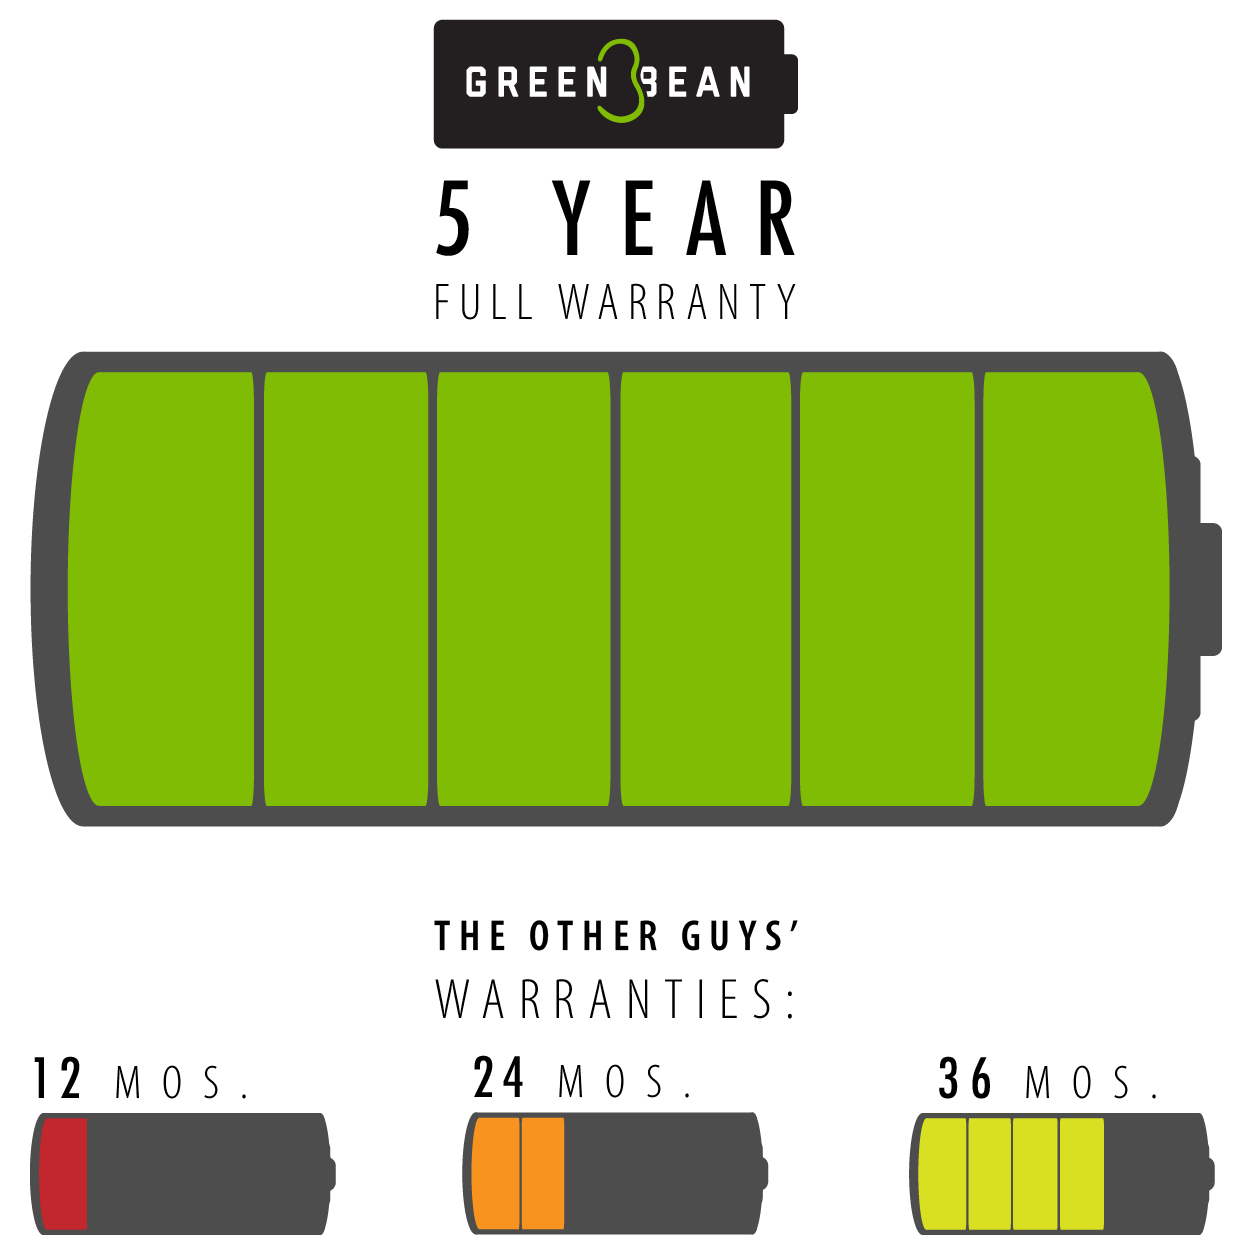 Green Bean Battery 5 Year Full Warranty